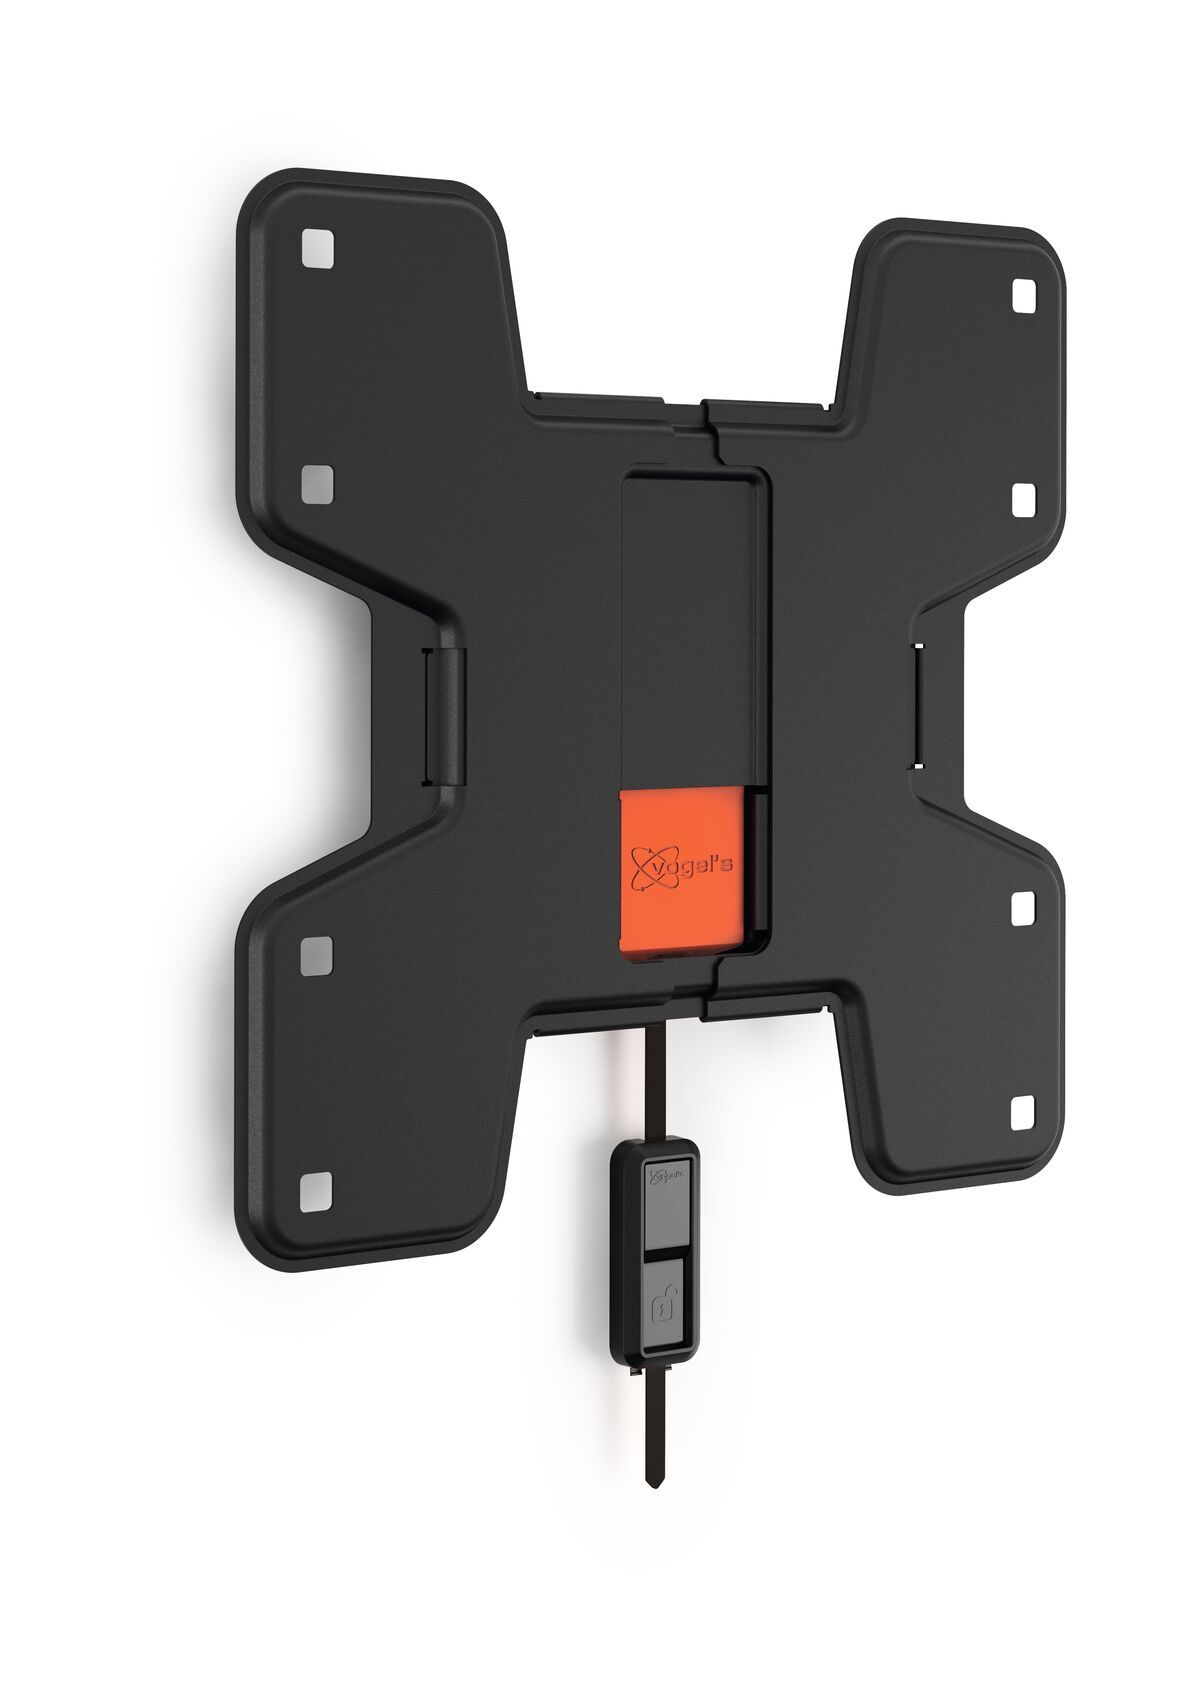 Vogel's WALL 2105 Fixed TV Wall Mount - Suitable for 19 up to 40 inch TVs up to 15 kg - Product